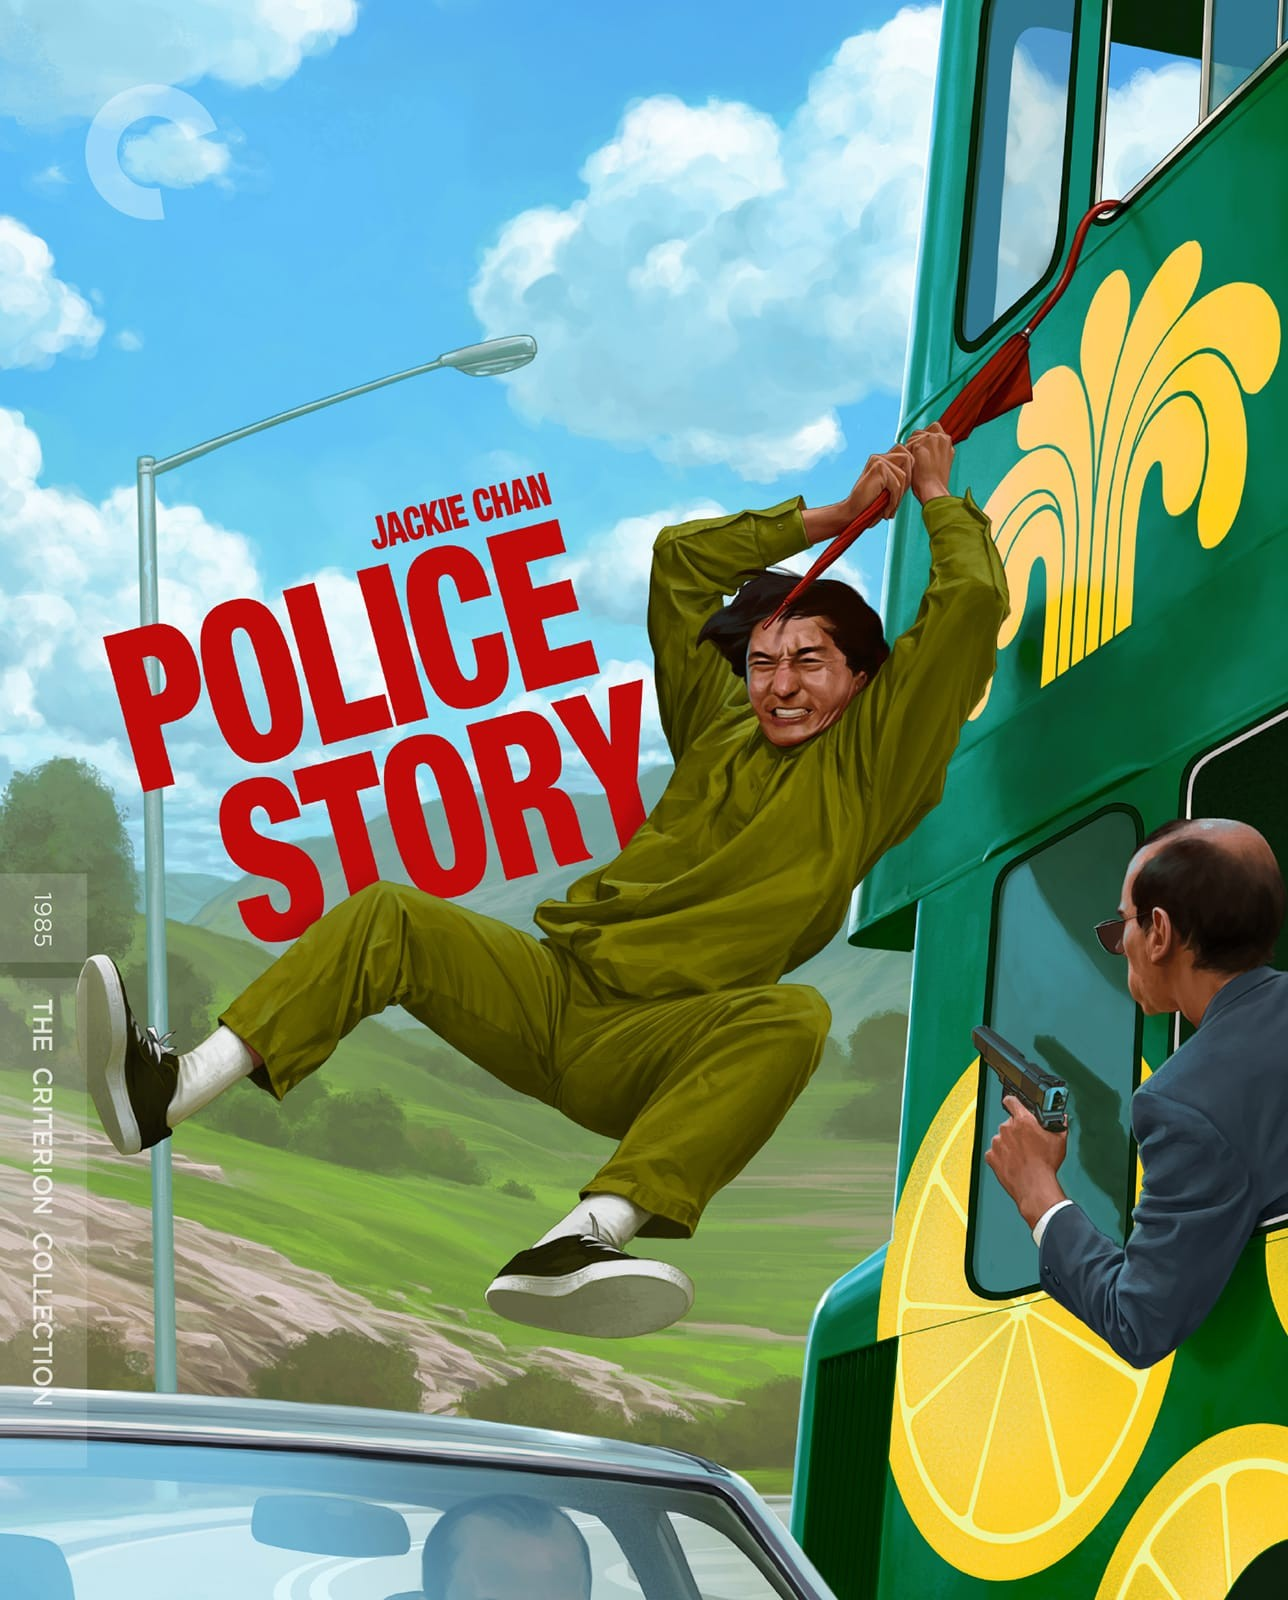 Police Story (1985) | The Criterion Collection